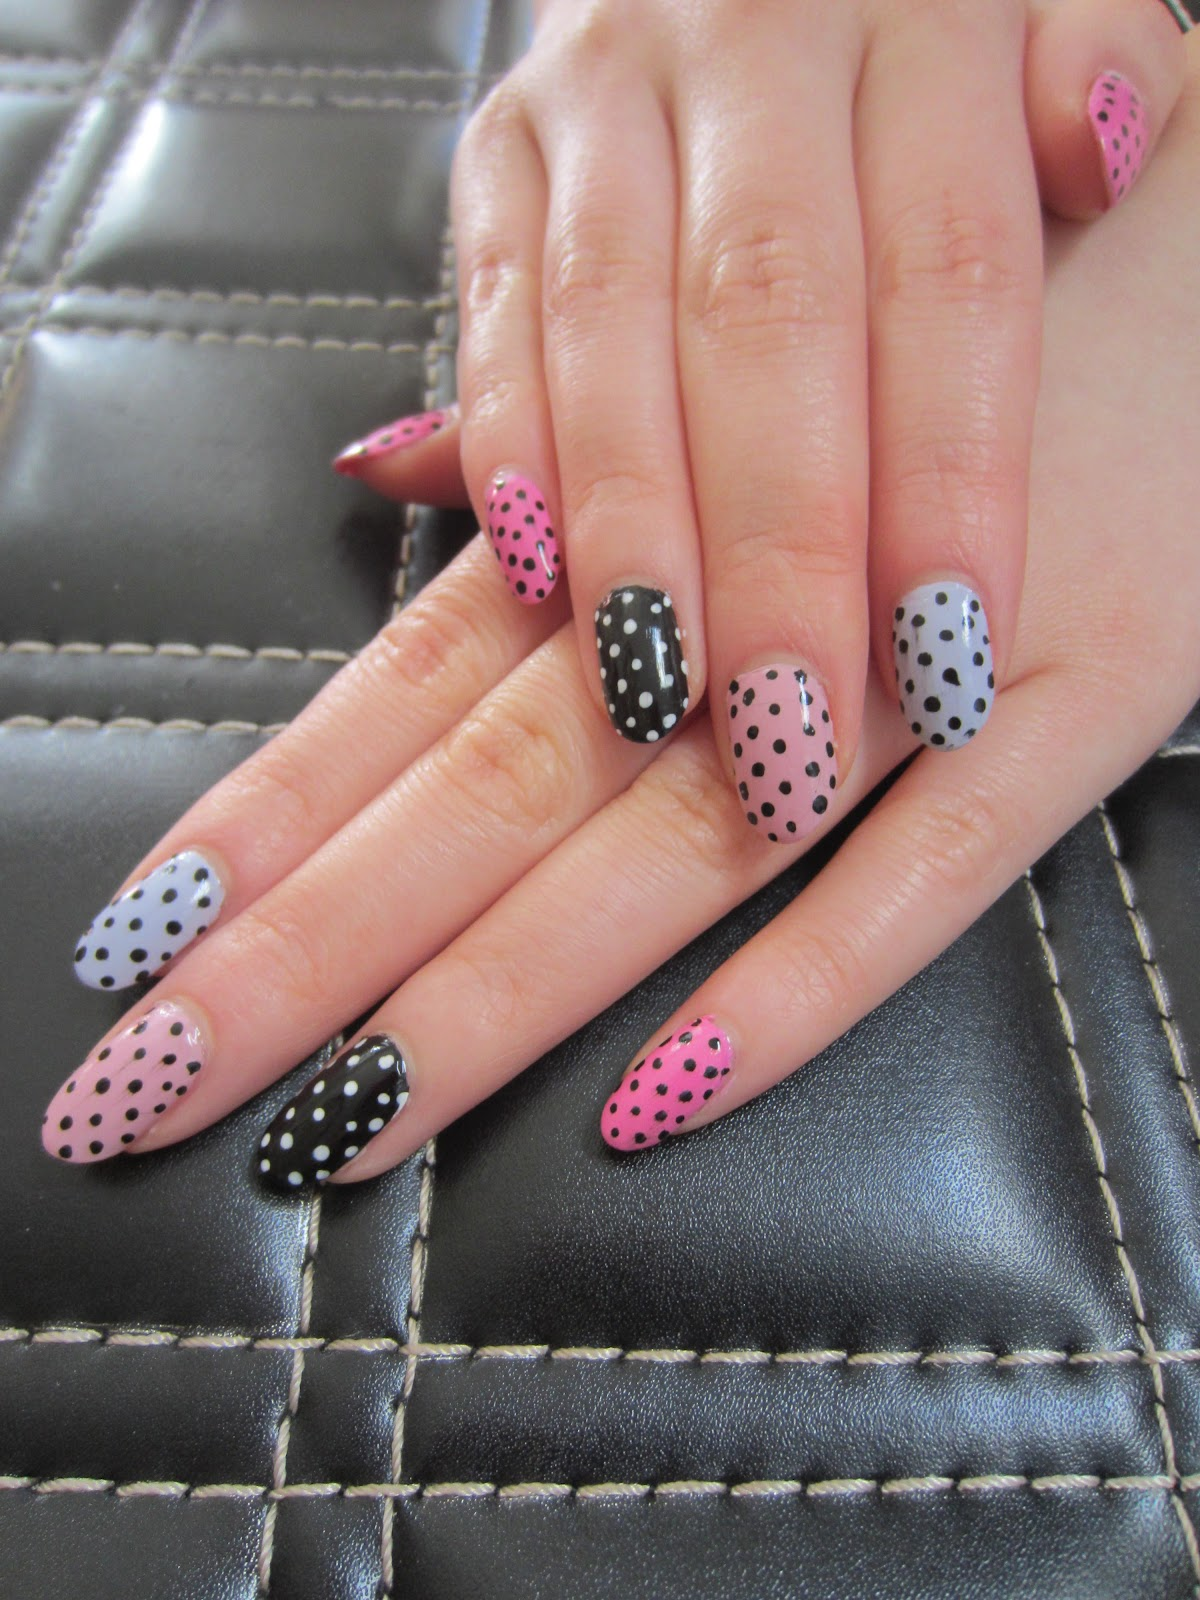 ... shaped nails designs black almond shaped nails almond shaped nails